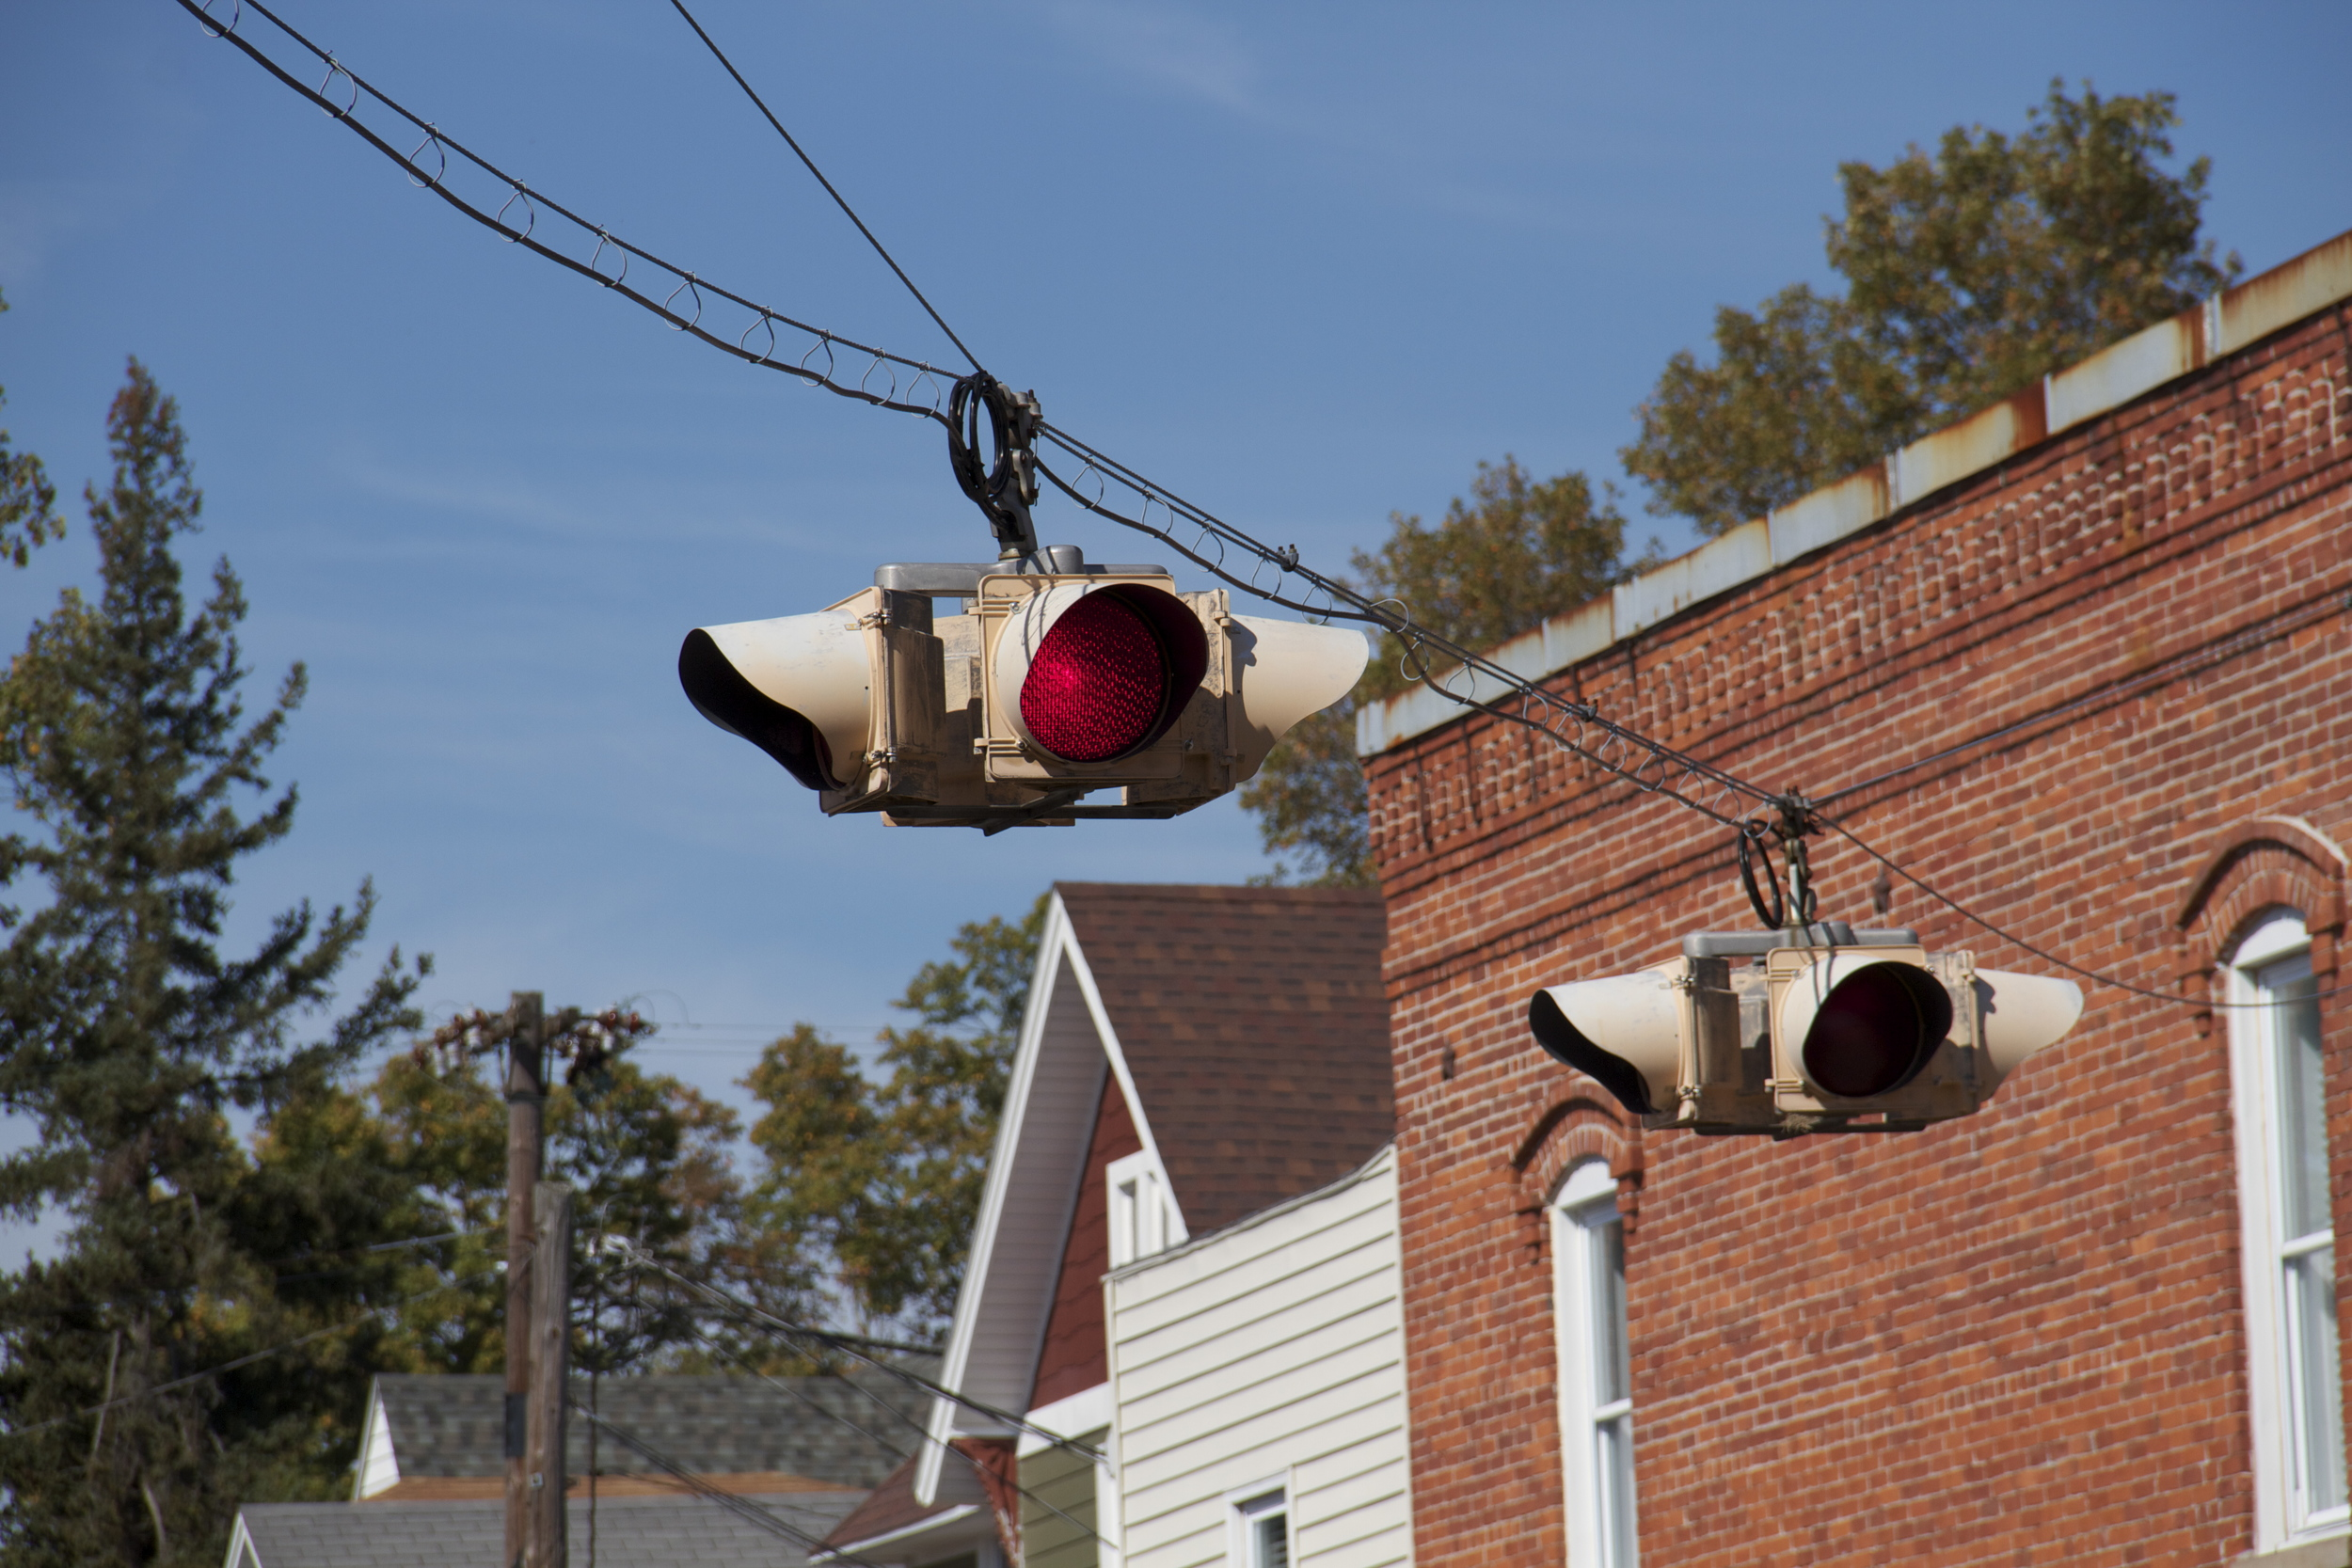 Traffic control in Roanoke, IN. No need for a traffic sign that changes colors!